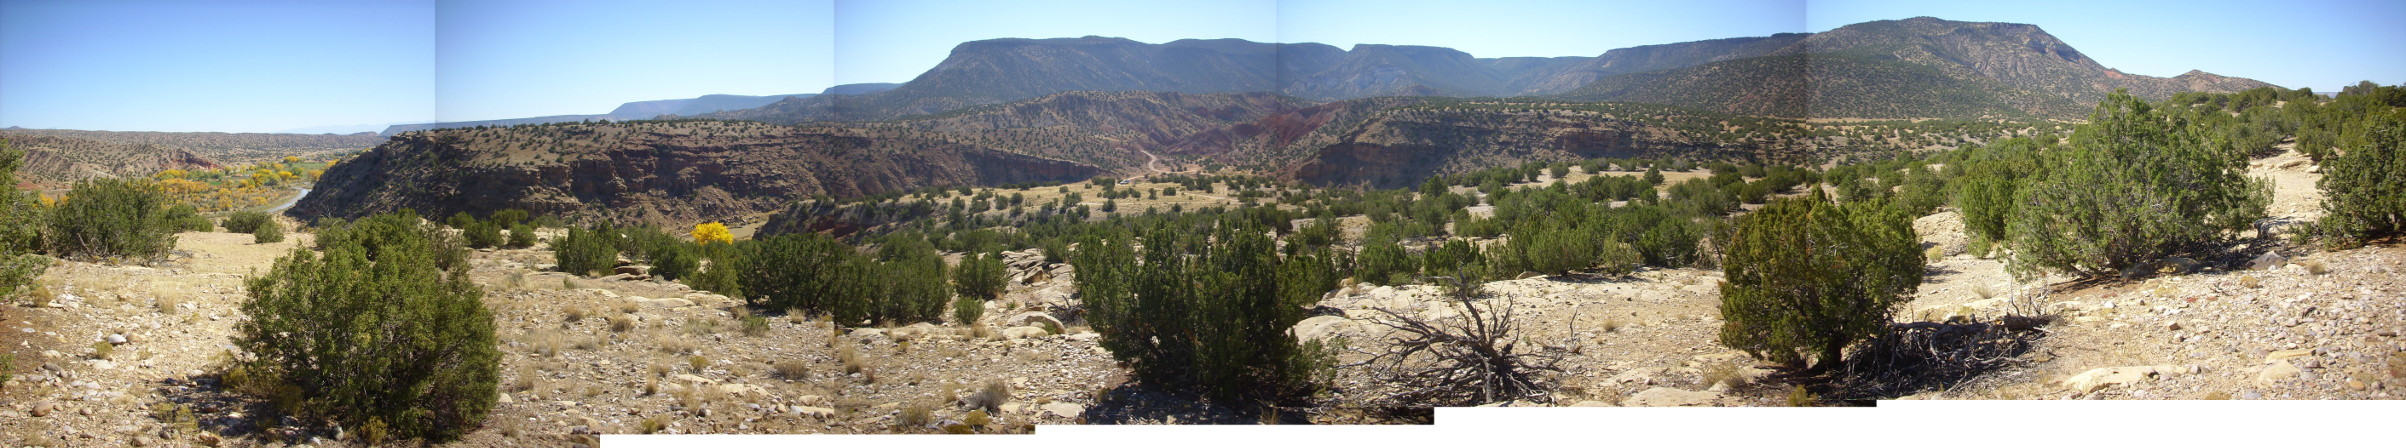 Panorama of Canones fault zone